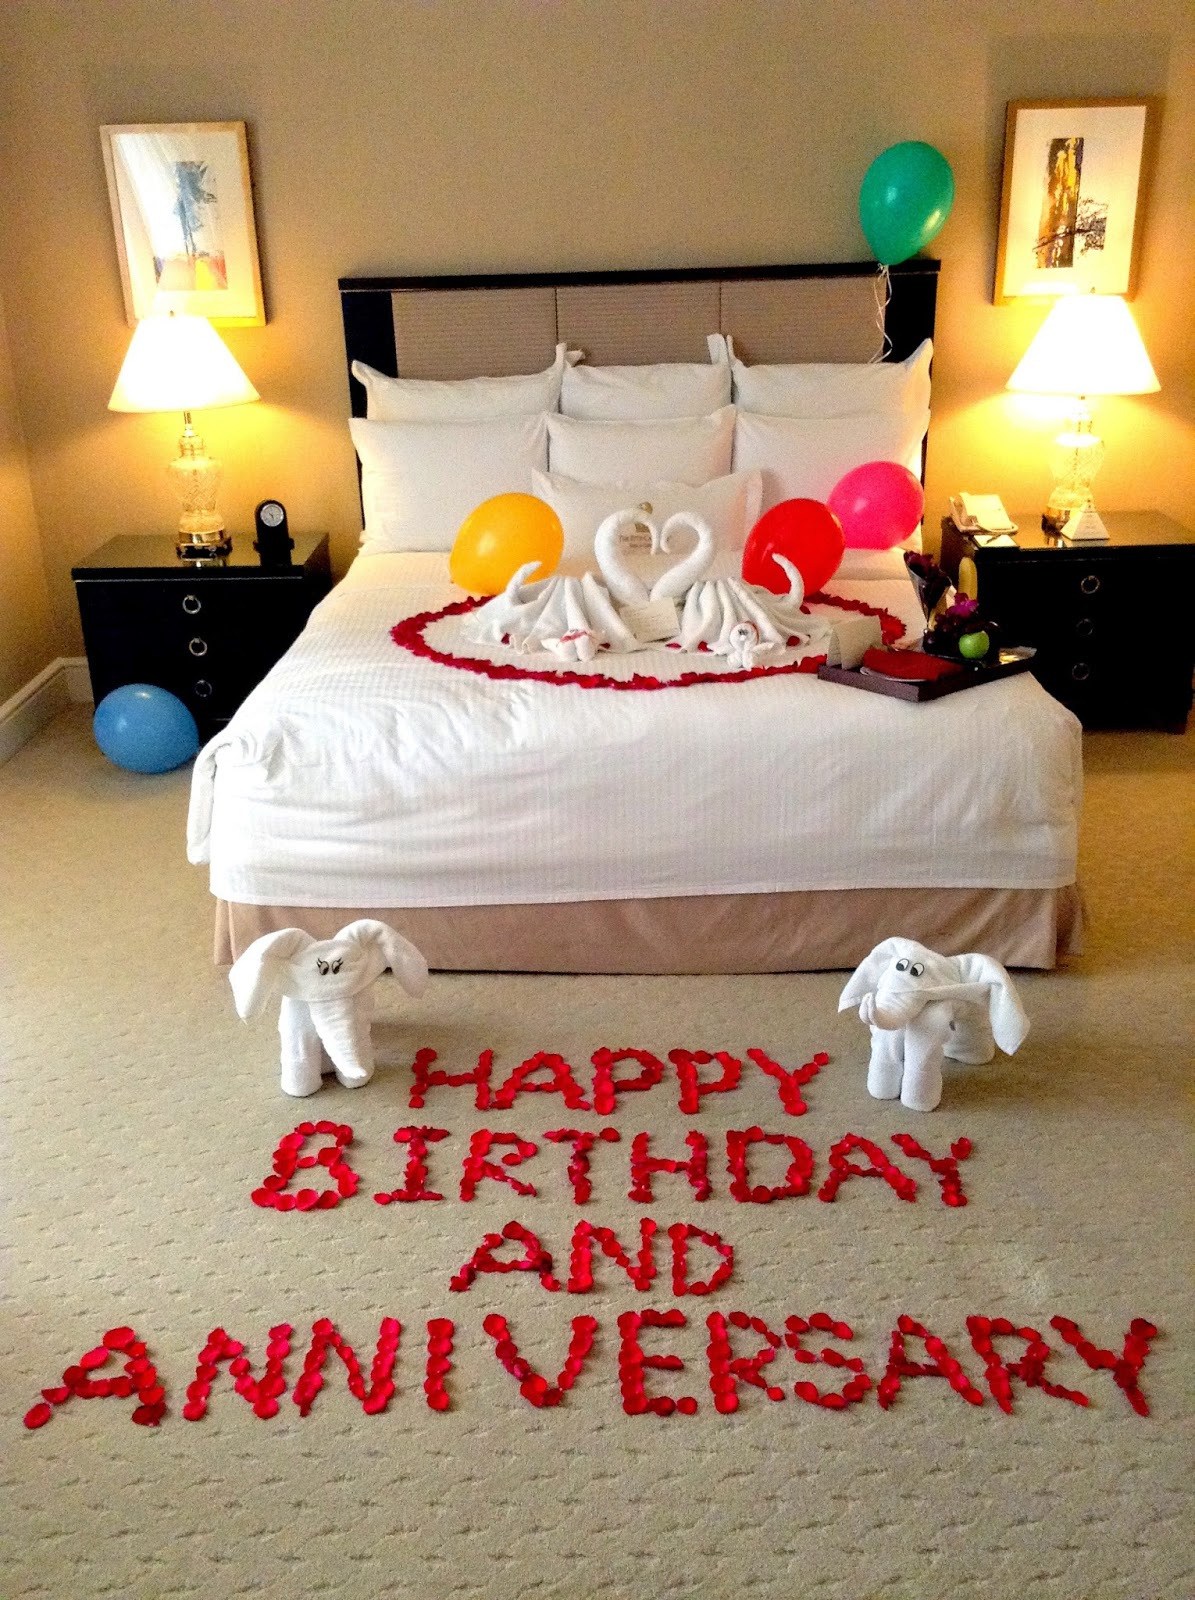 How To Decorate A Hotel Room For A Birthday